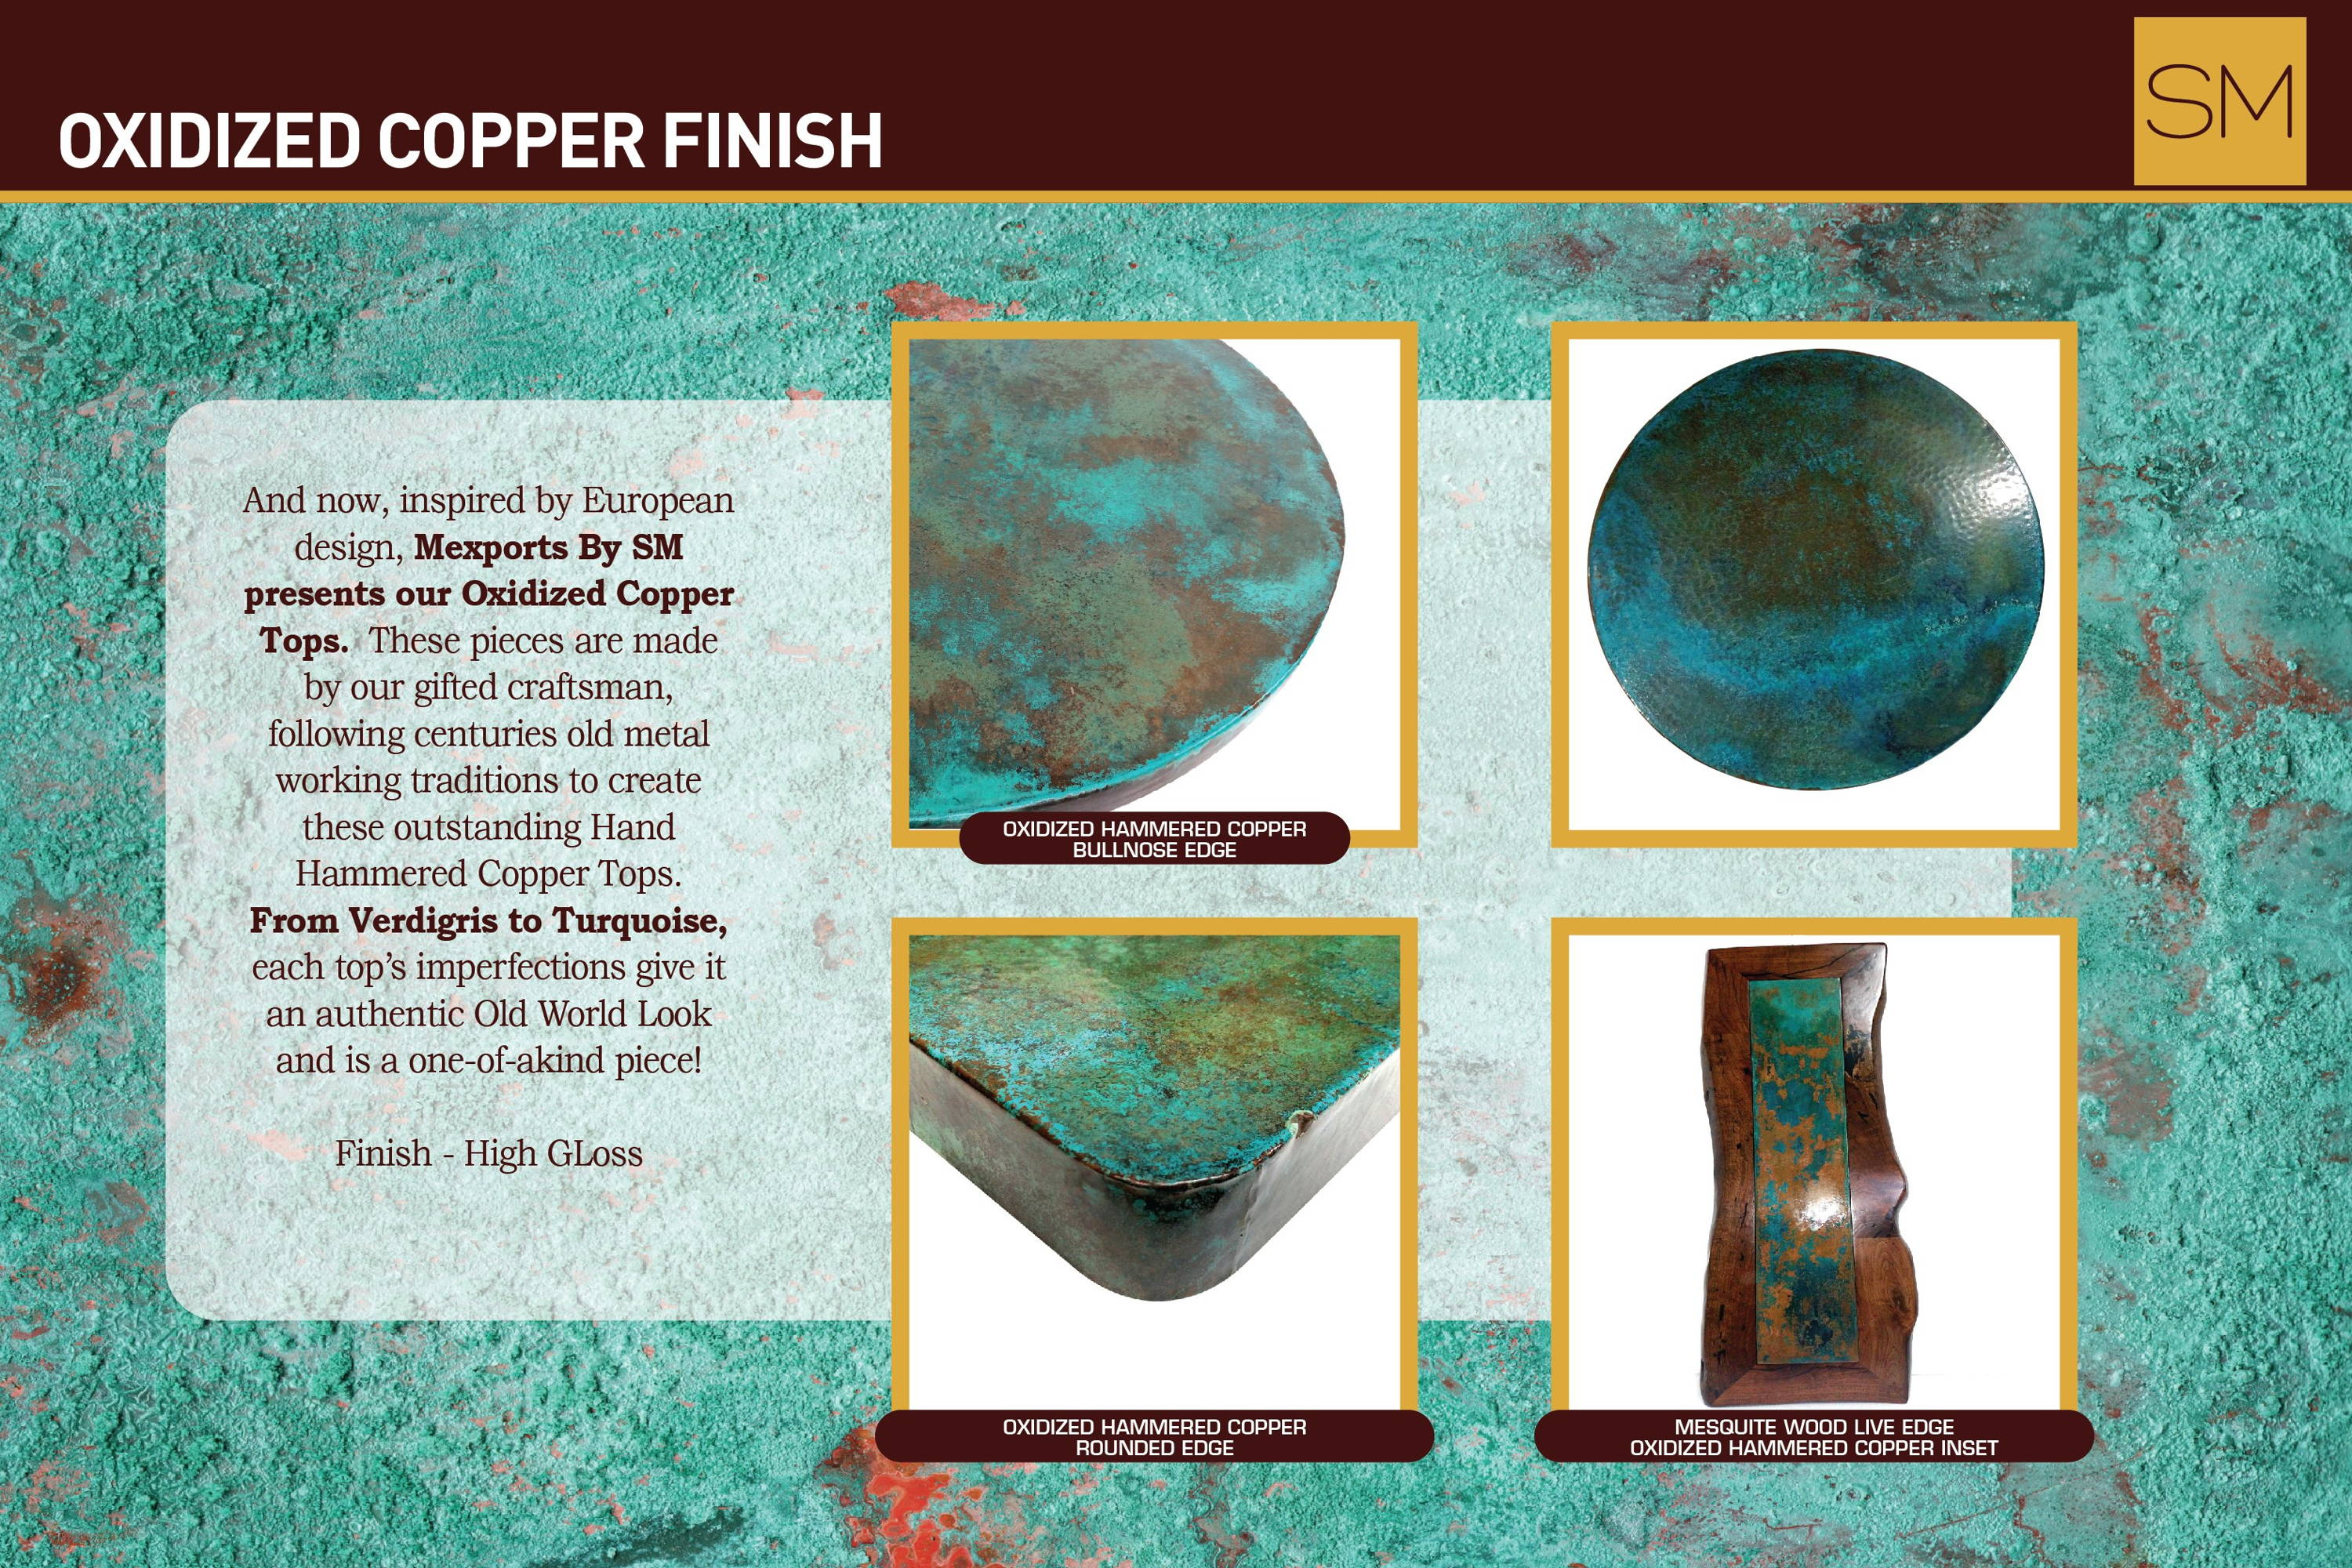 Oxidized hammered copper with bullnose edge, oxidized hammered copper rounded edge, mesquite wood live edge with oxidized hammered copper inset